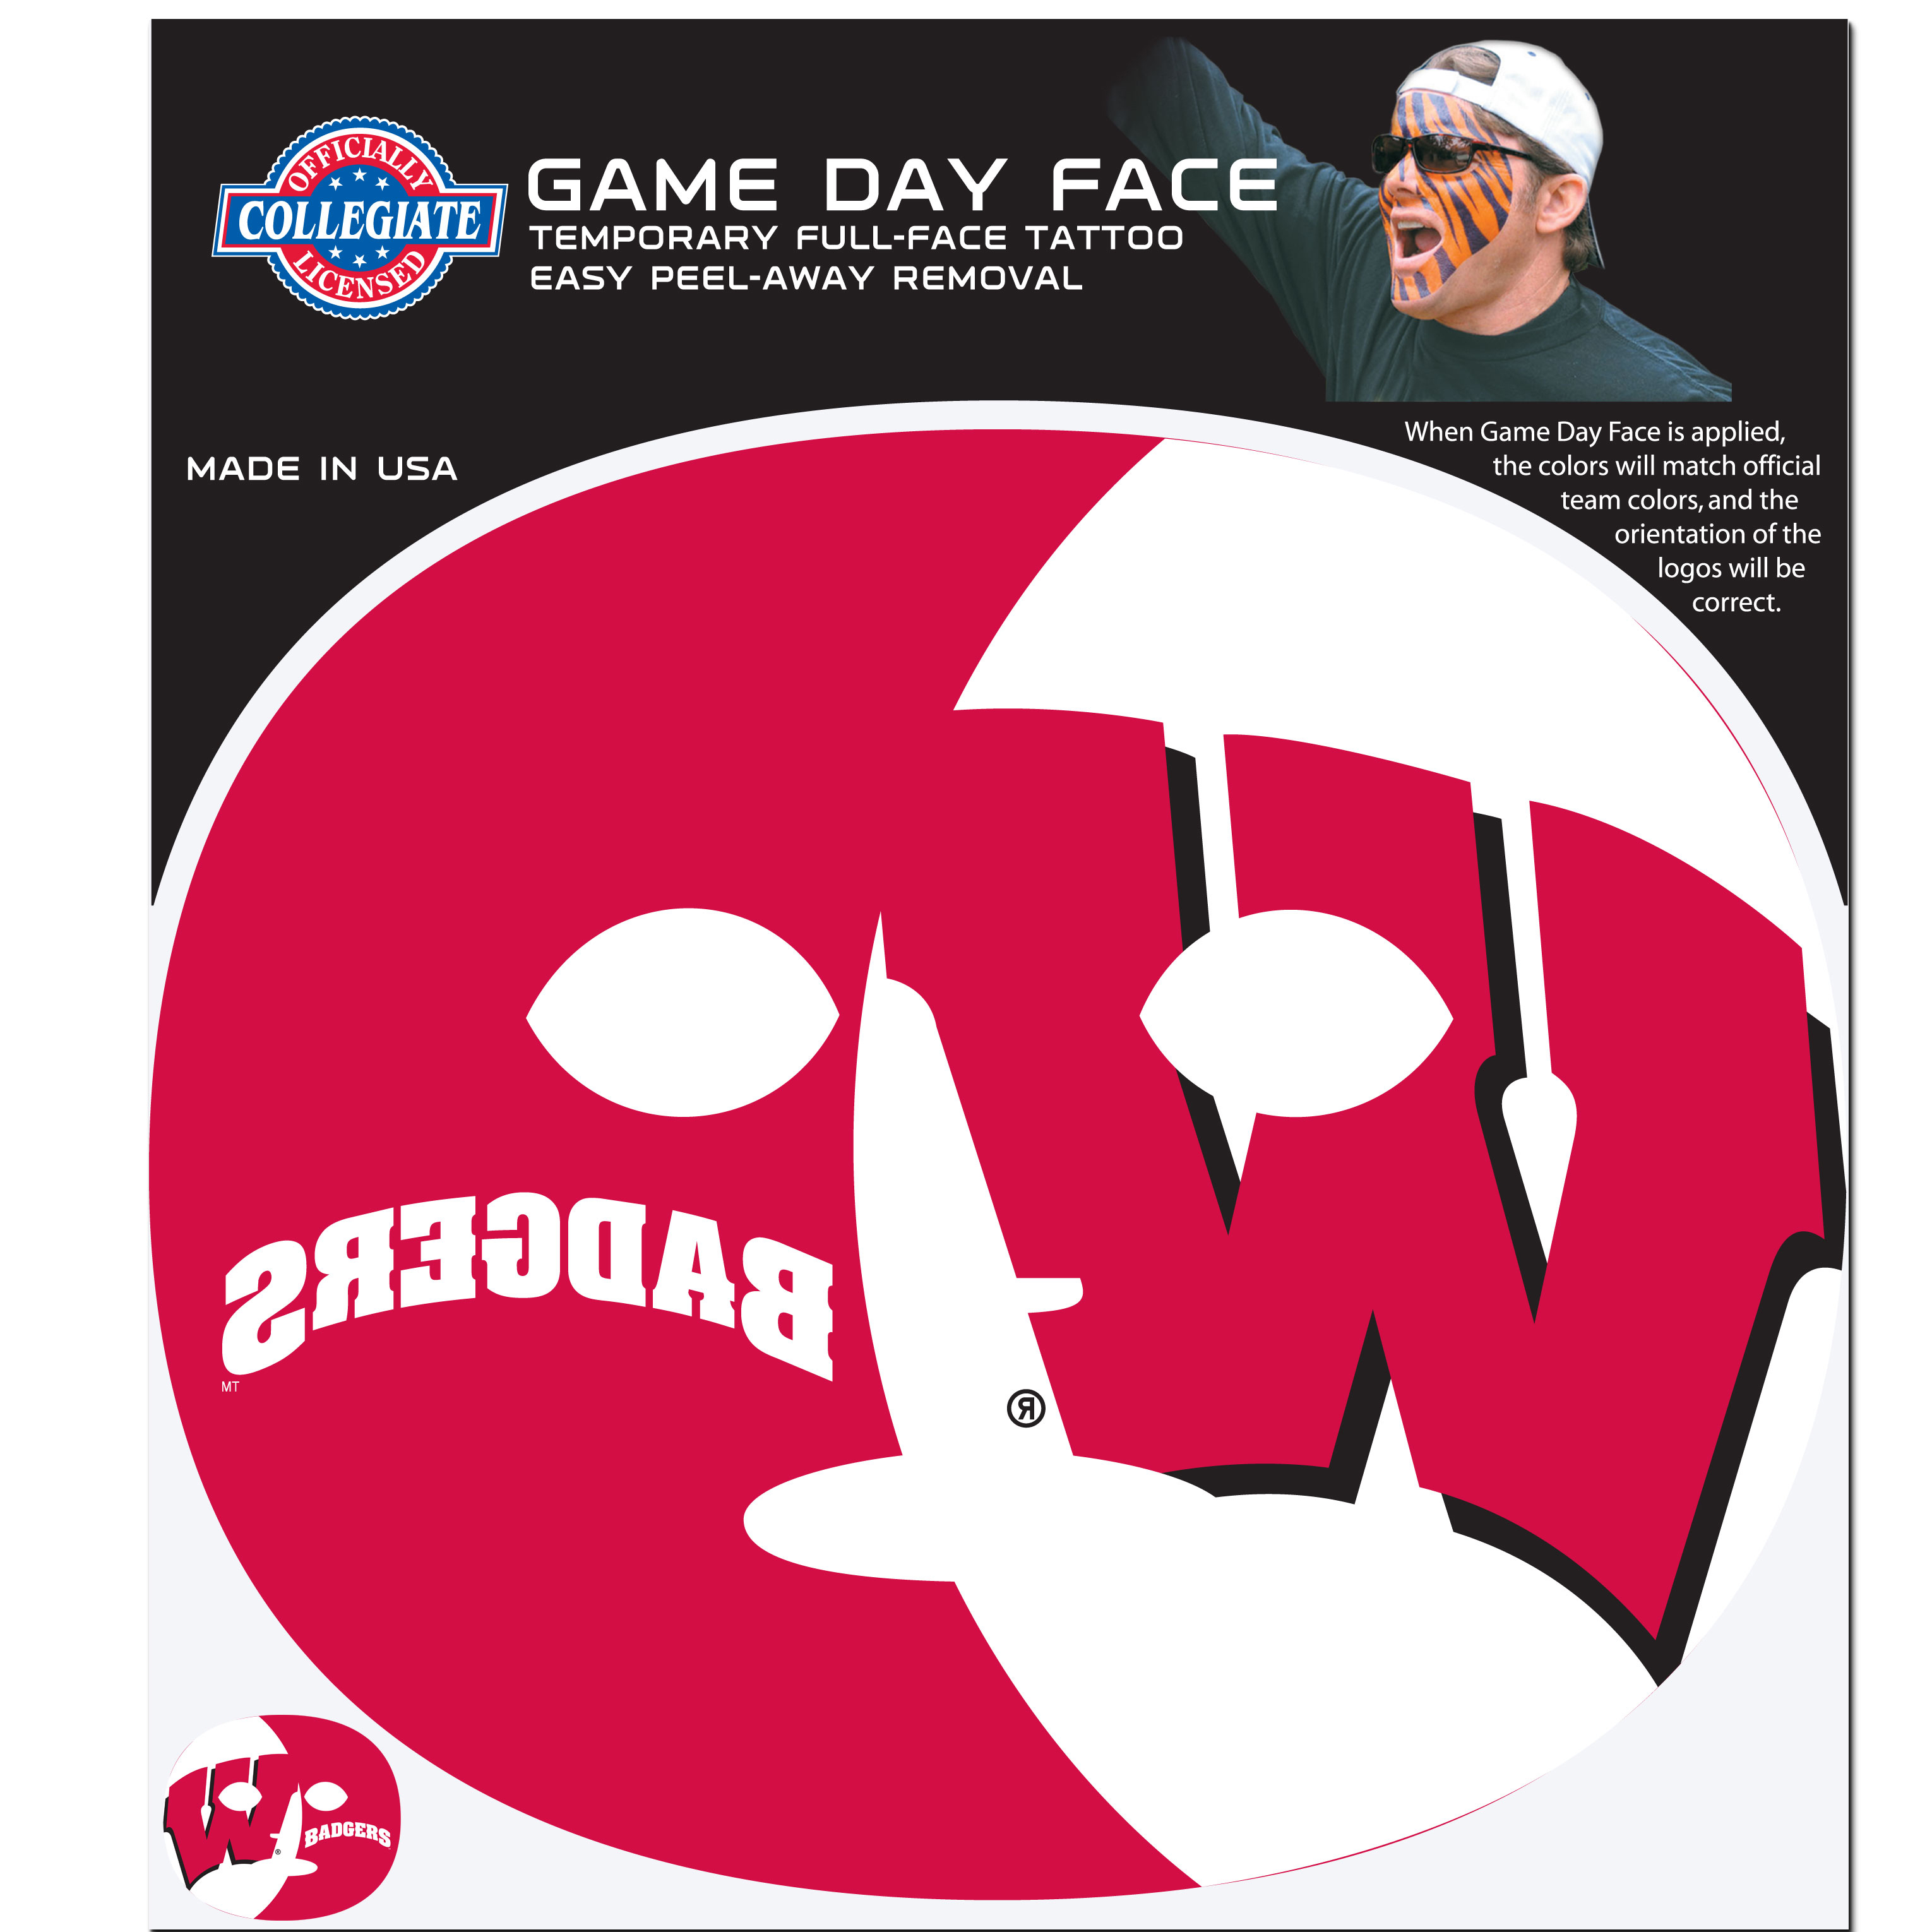 Wisconsin Badgers Set of 8 Game Day Faces - No better way to show your team pride than by painting your face. Siskiyou's Game Day Face Temporary Tattoo isn't your typical face paint. It is a water based application that doesn't smudge, smear or sweat off while you're wearing it and easily peels off after you're done celebrating your team's big Win! The temporary tattoo is large enough to trim down to fit your face. Our Game Day Face Temporary Tattoo's are fun for fans of all ages. You may have seen our product before, these are the same Temporary Face Tattoos as pitched on ABC's Shark Tank.